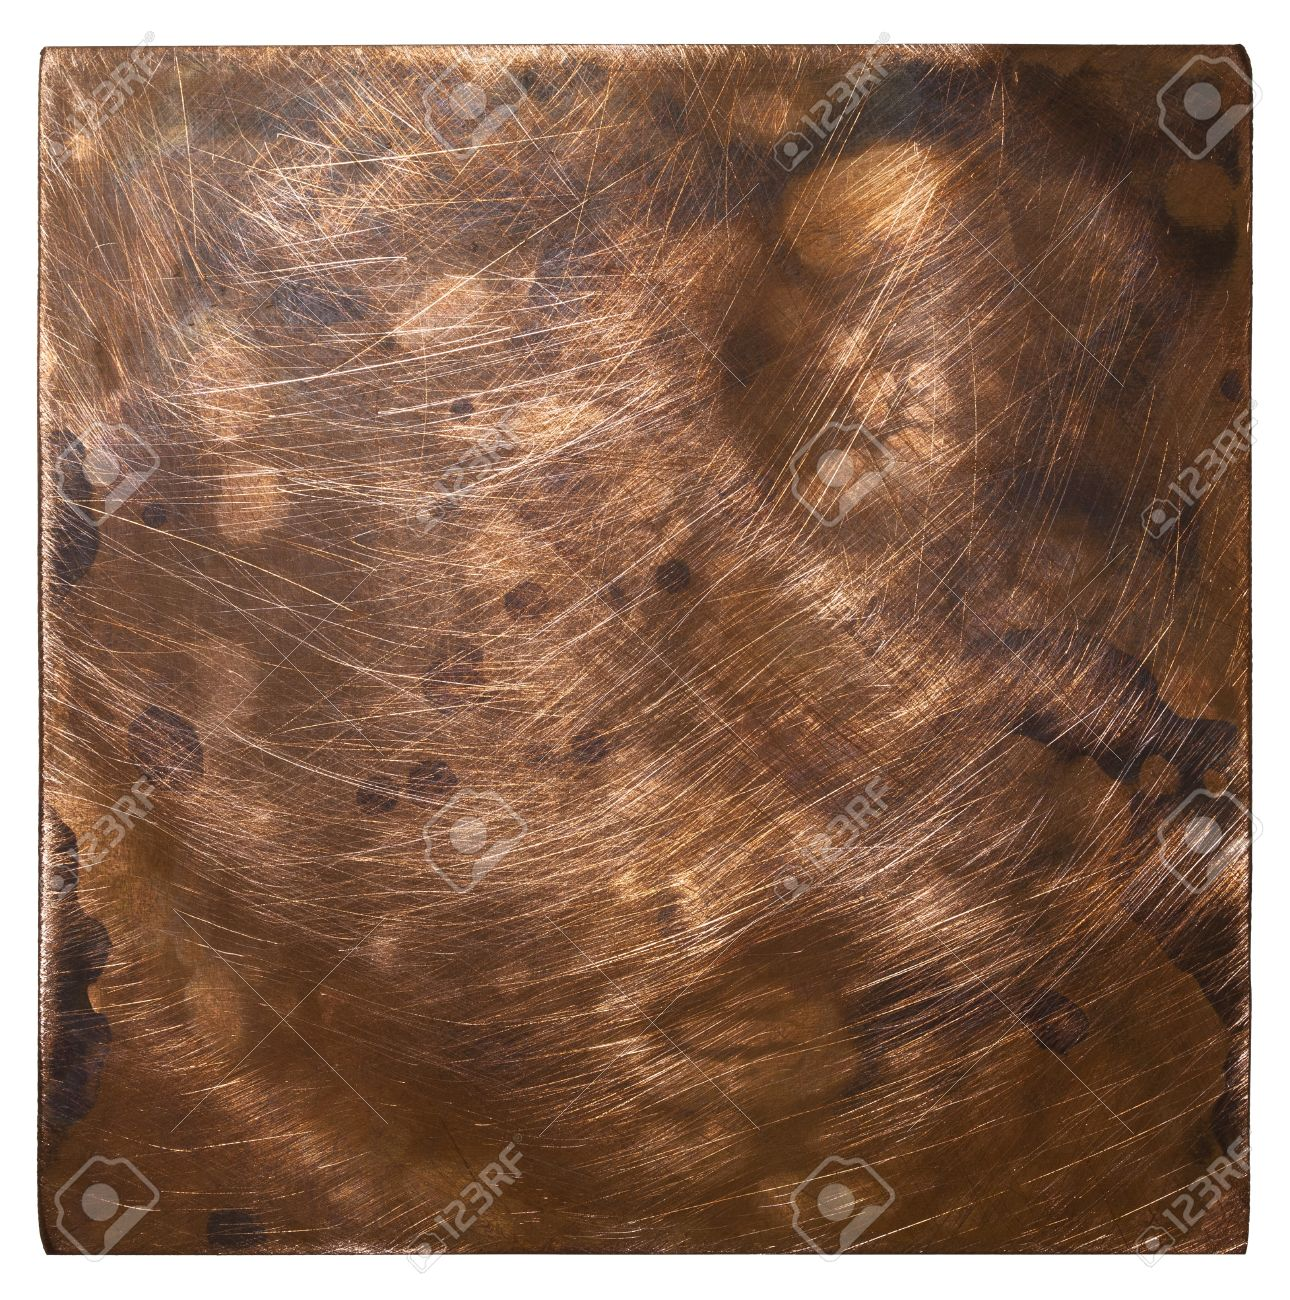 Copper plate texture, old metal background. Stock Photo - 22143572